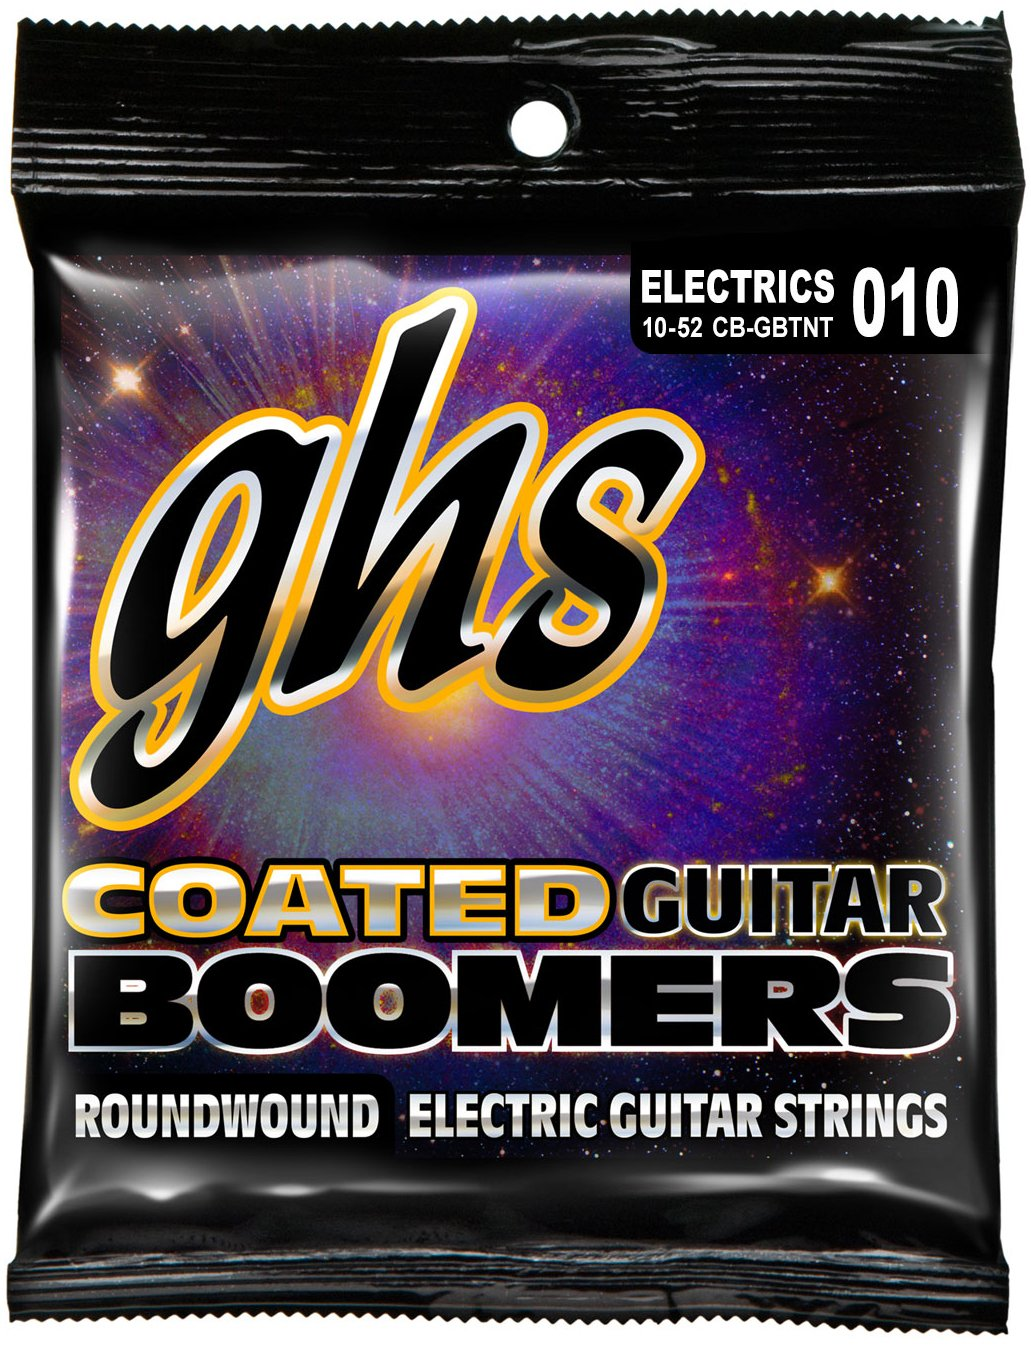 Cheap GHS Strings Coated Boomers Nickel-Plated Electric Guitar Strings Thin & Thick (.010.052) (CB-GBTNT Black Friday & Cyber Monday 2019